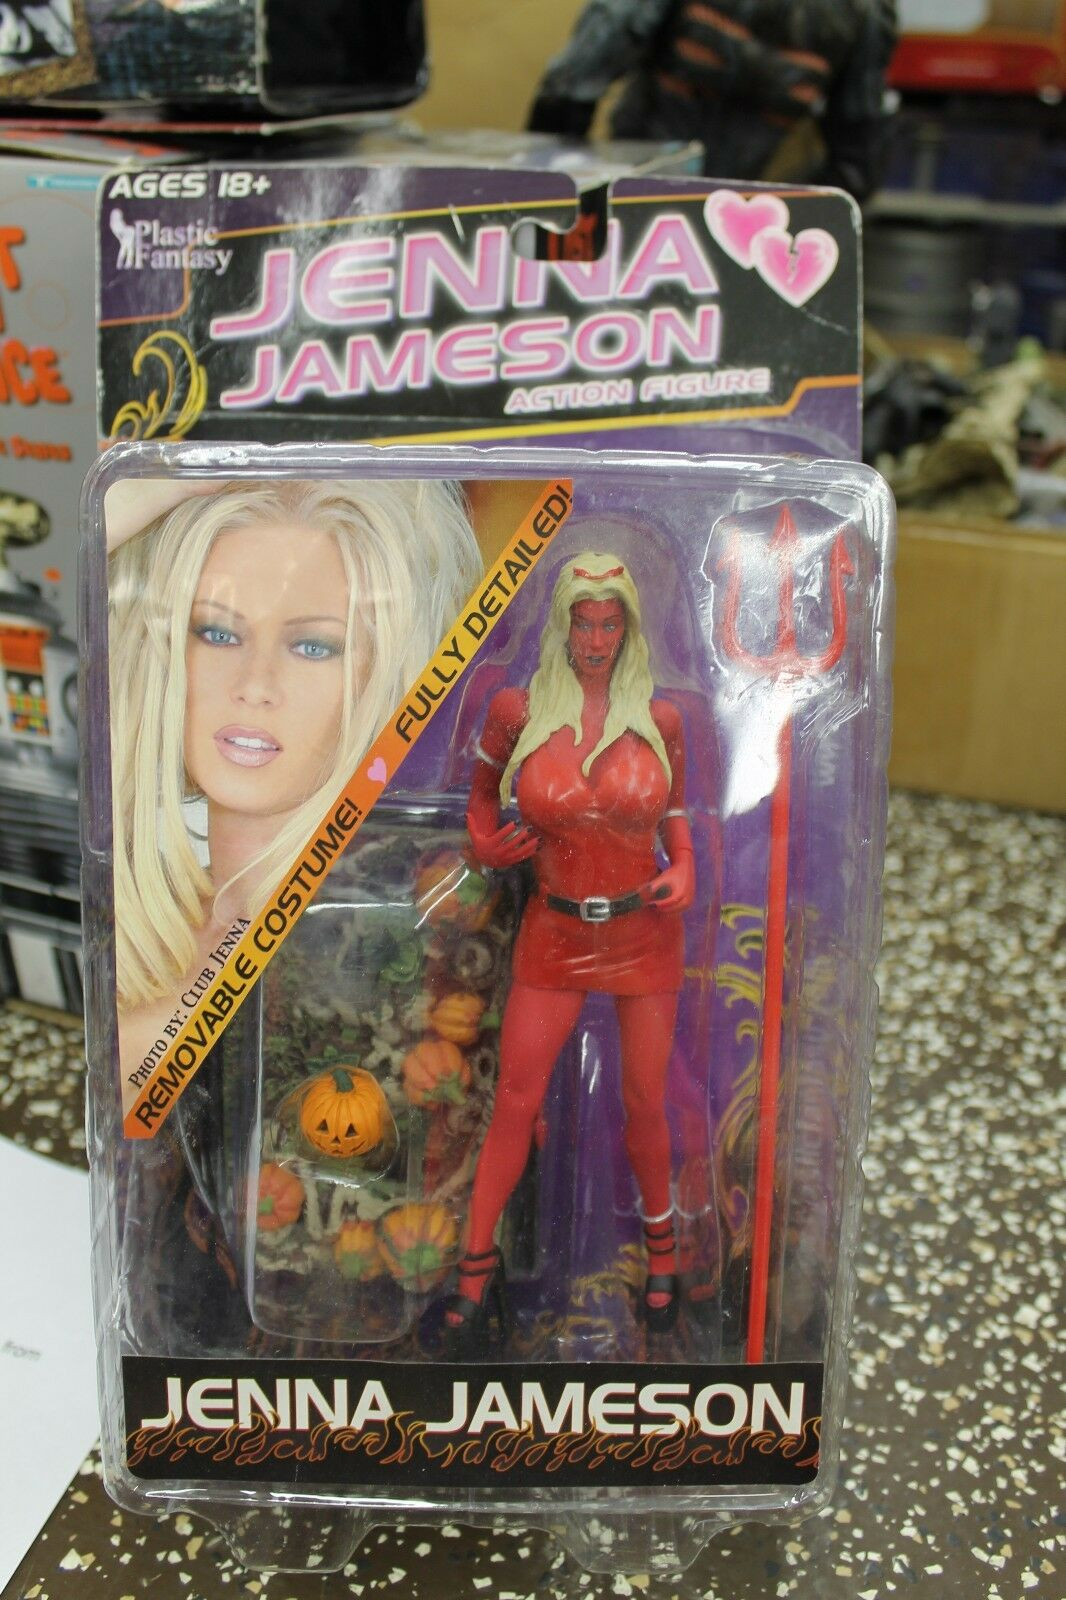 Adult XXX Superstars Jenna Jameson Action Figure rosso Devil Life Like 18yrs+